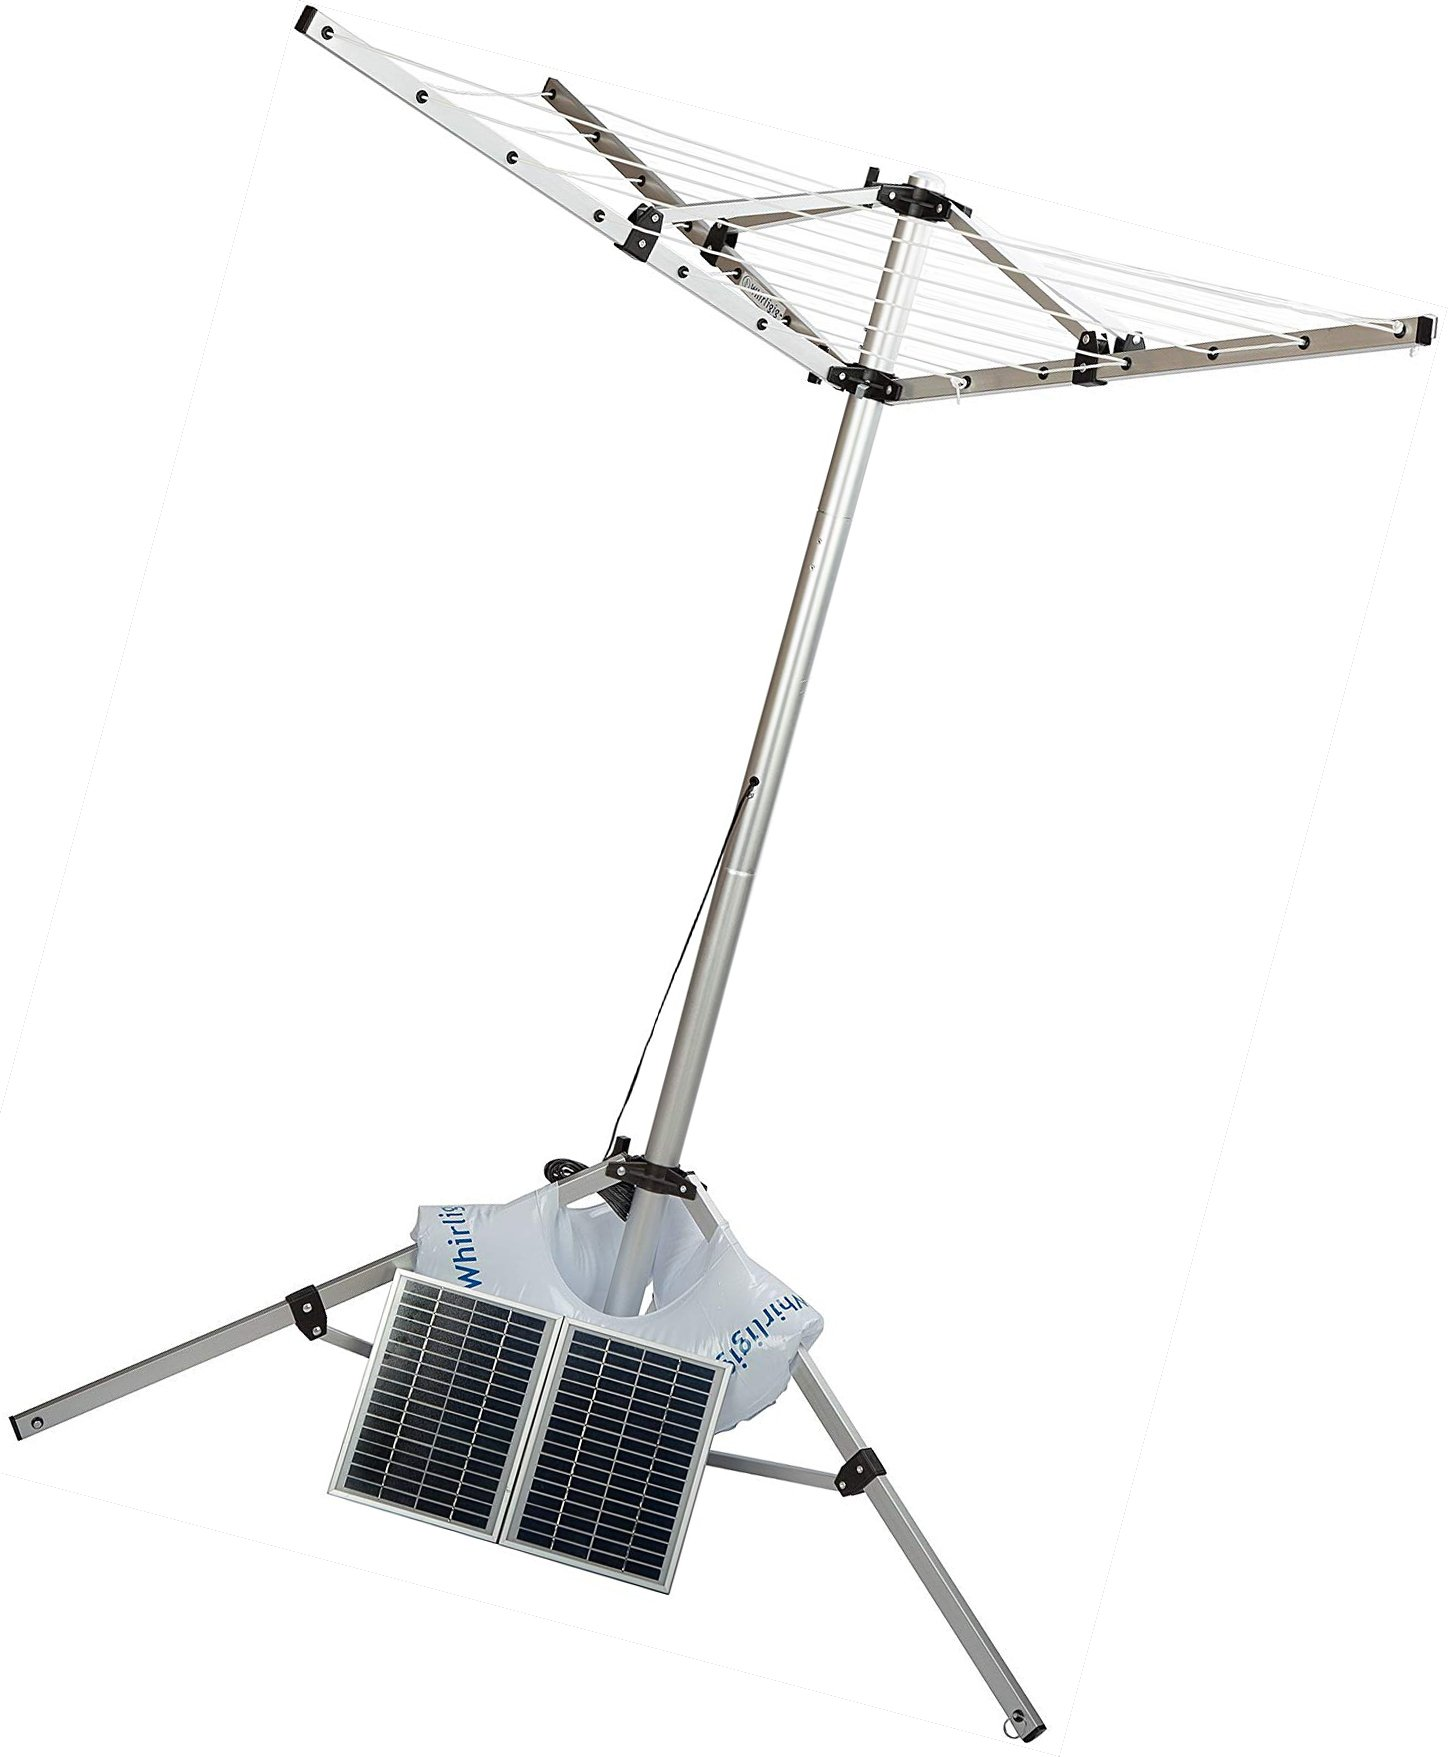 solar-powered clothes dryer by whirlgig